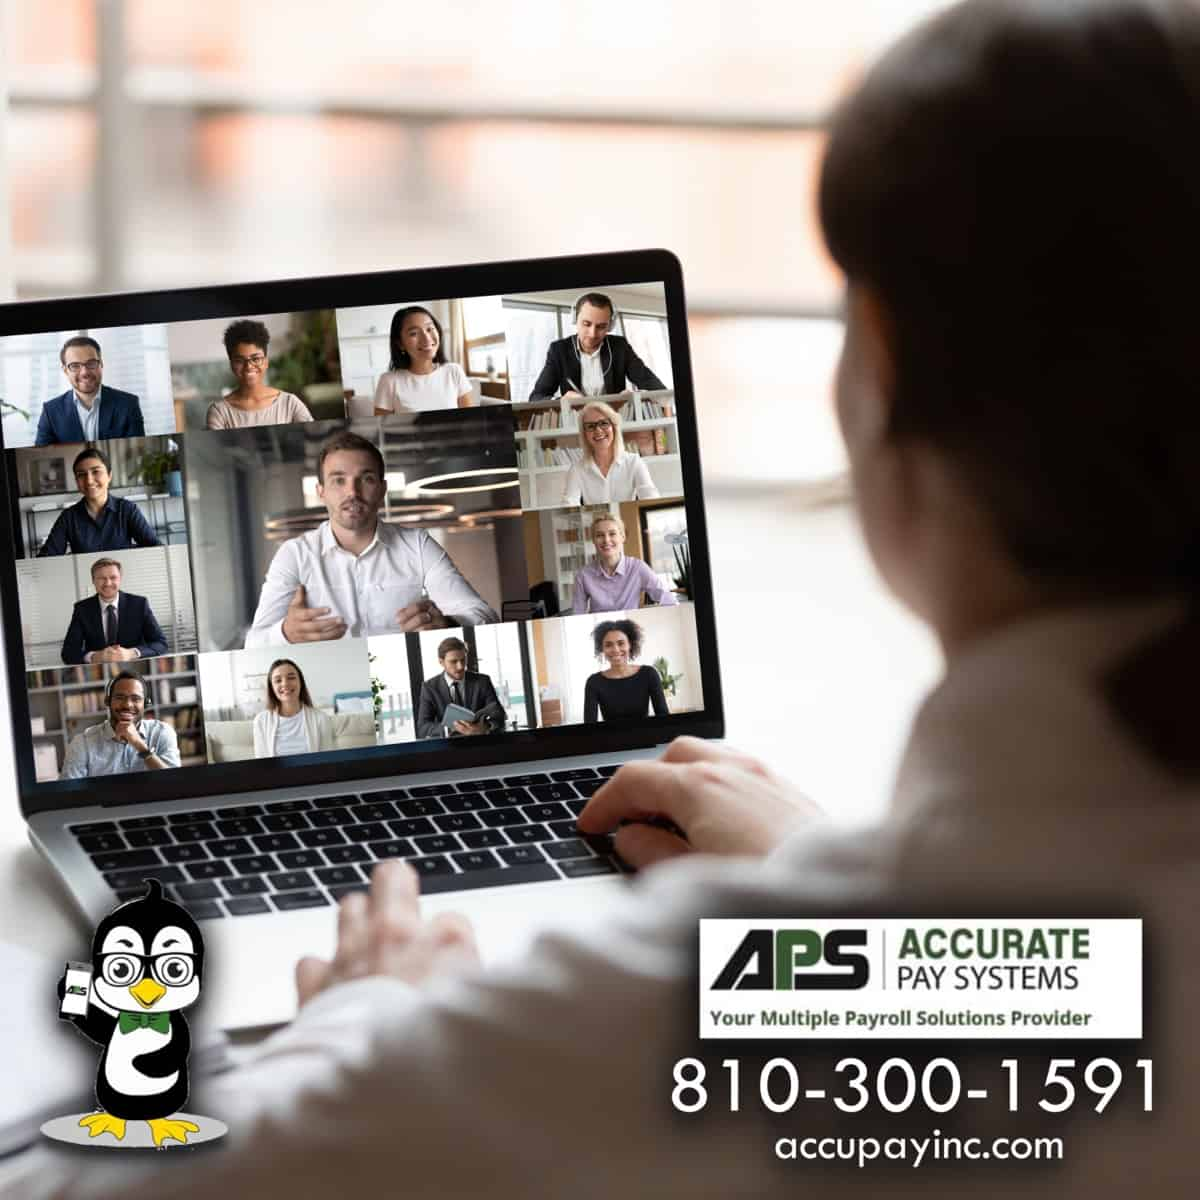 Remote virtual meeting from Accurate Pay Systems Inc.